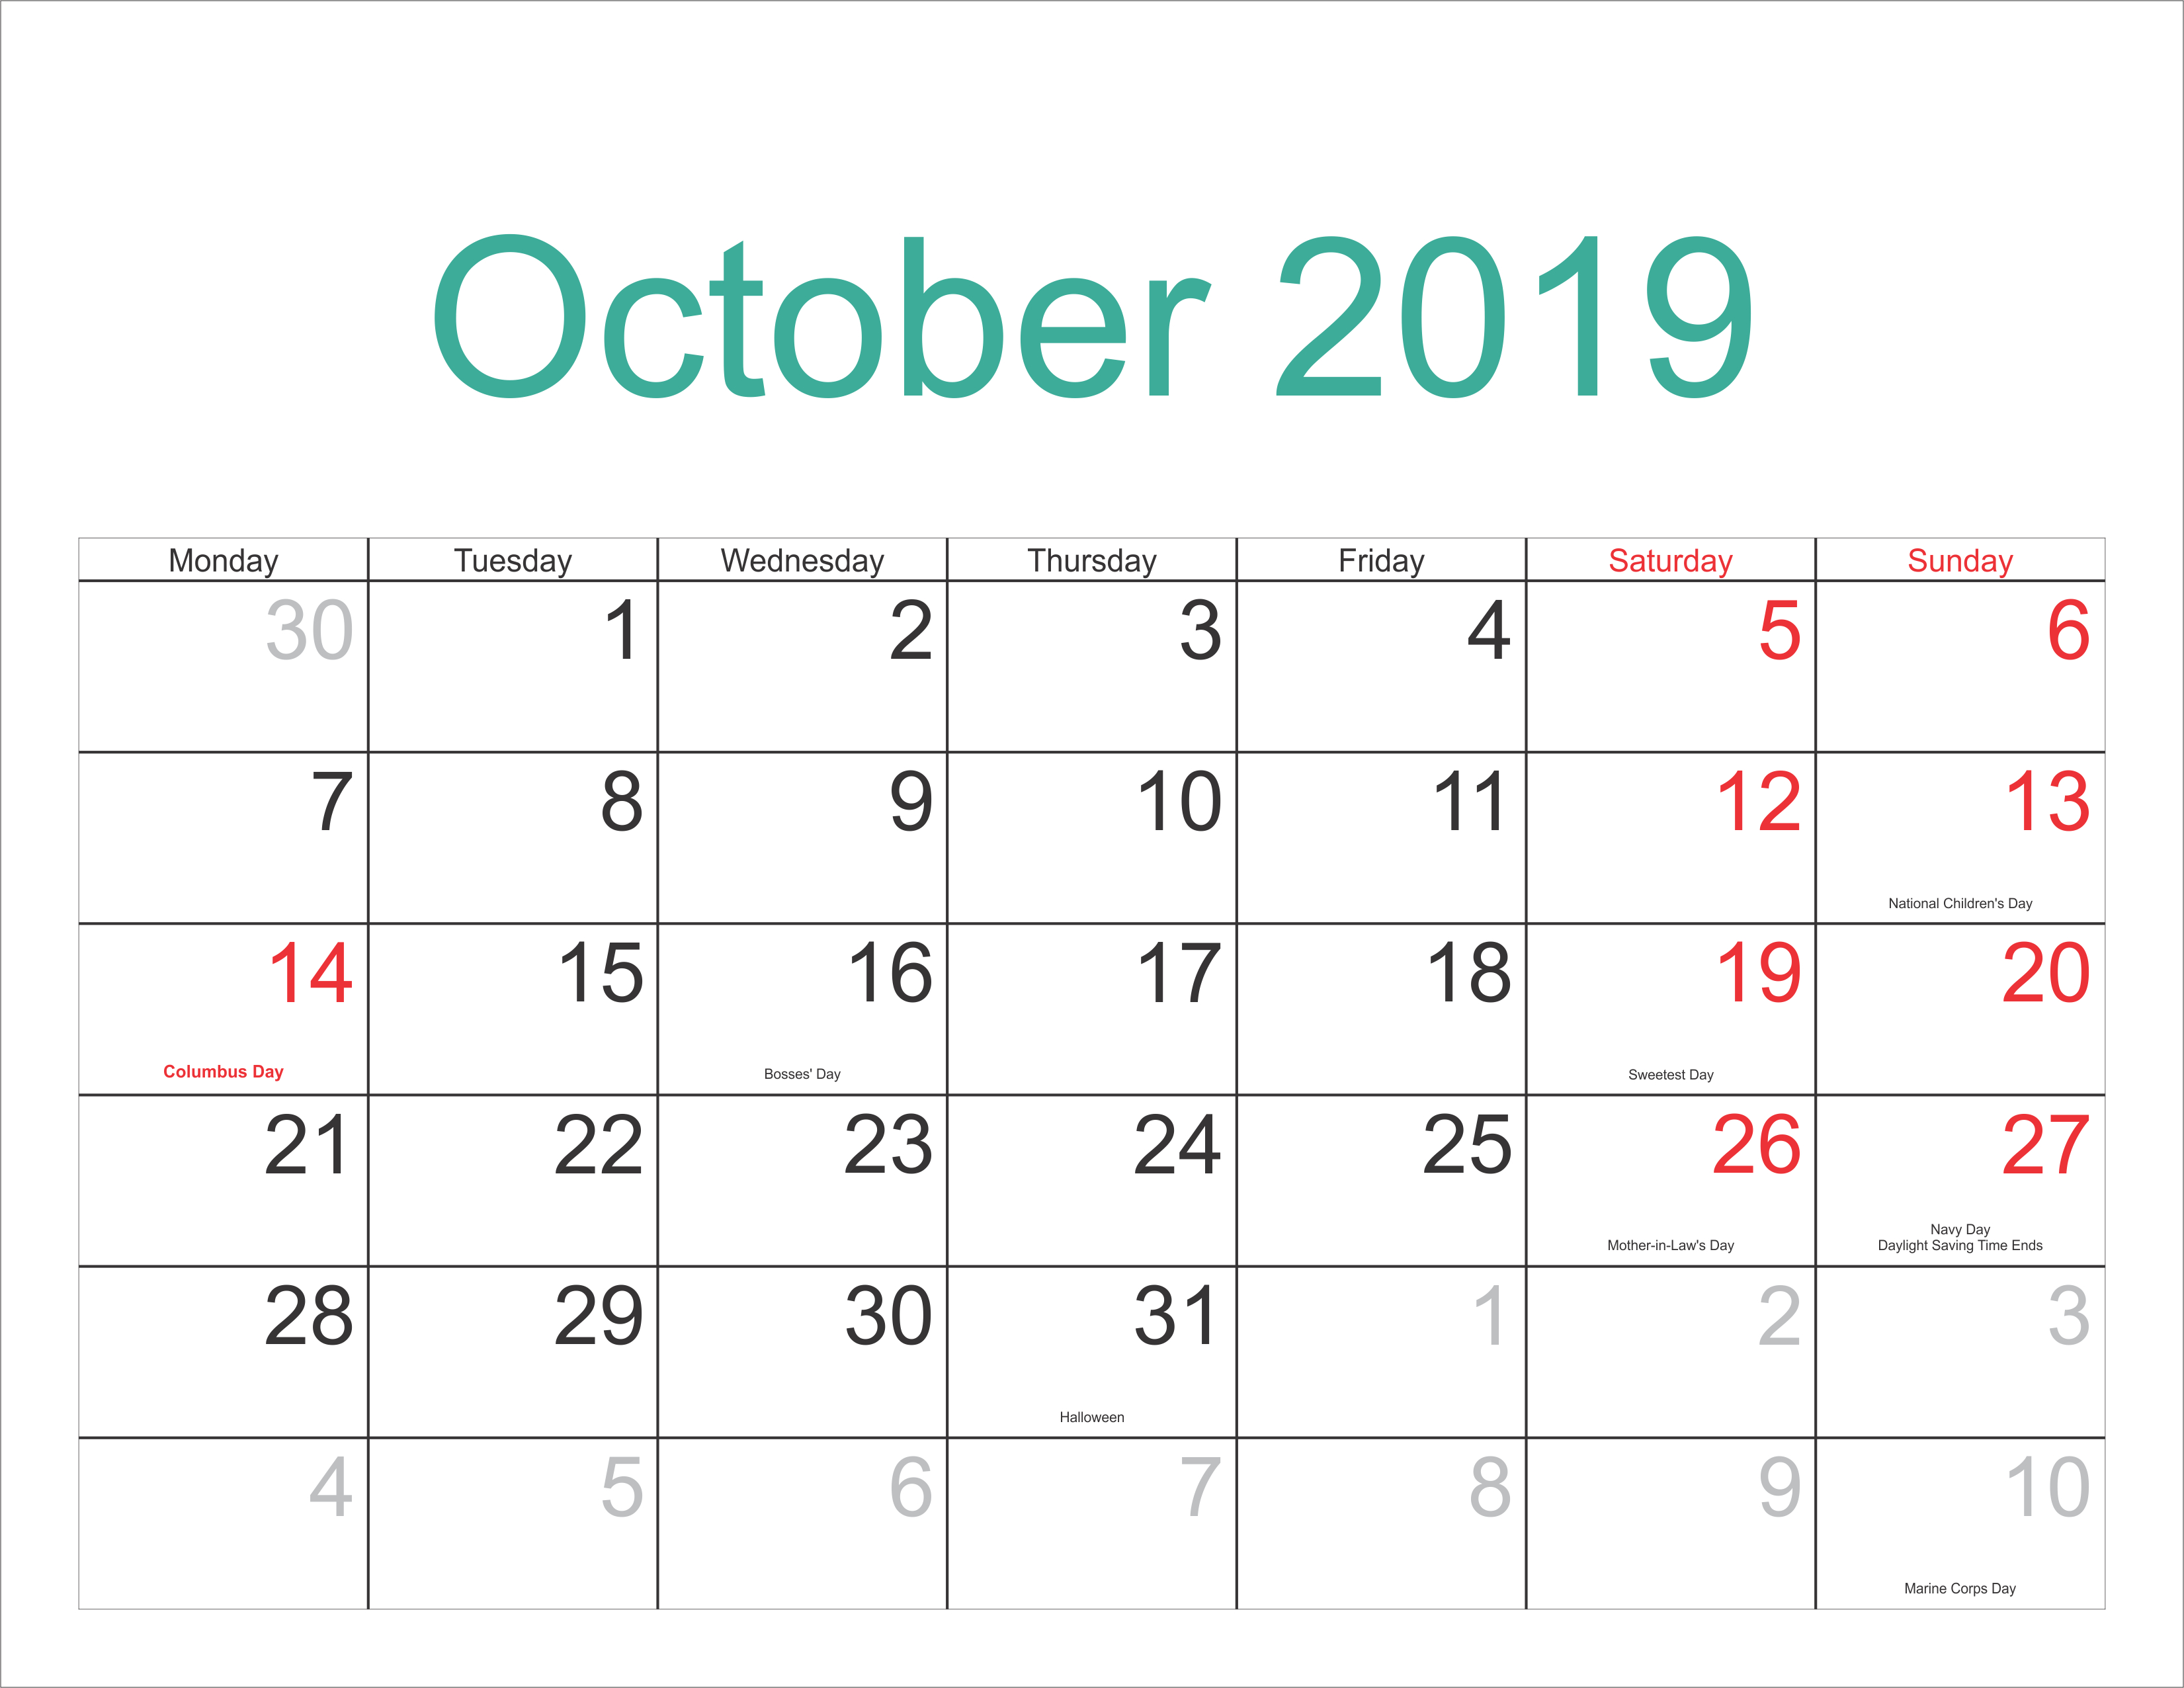 Free October 2019 Calendar With Holidays - Free Printable Calendar for Calendar October 2019 Australia Images